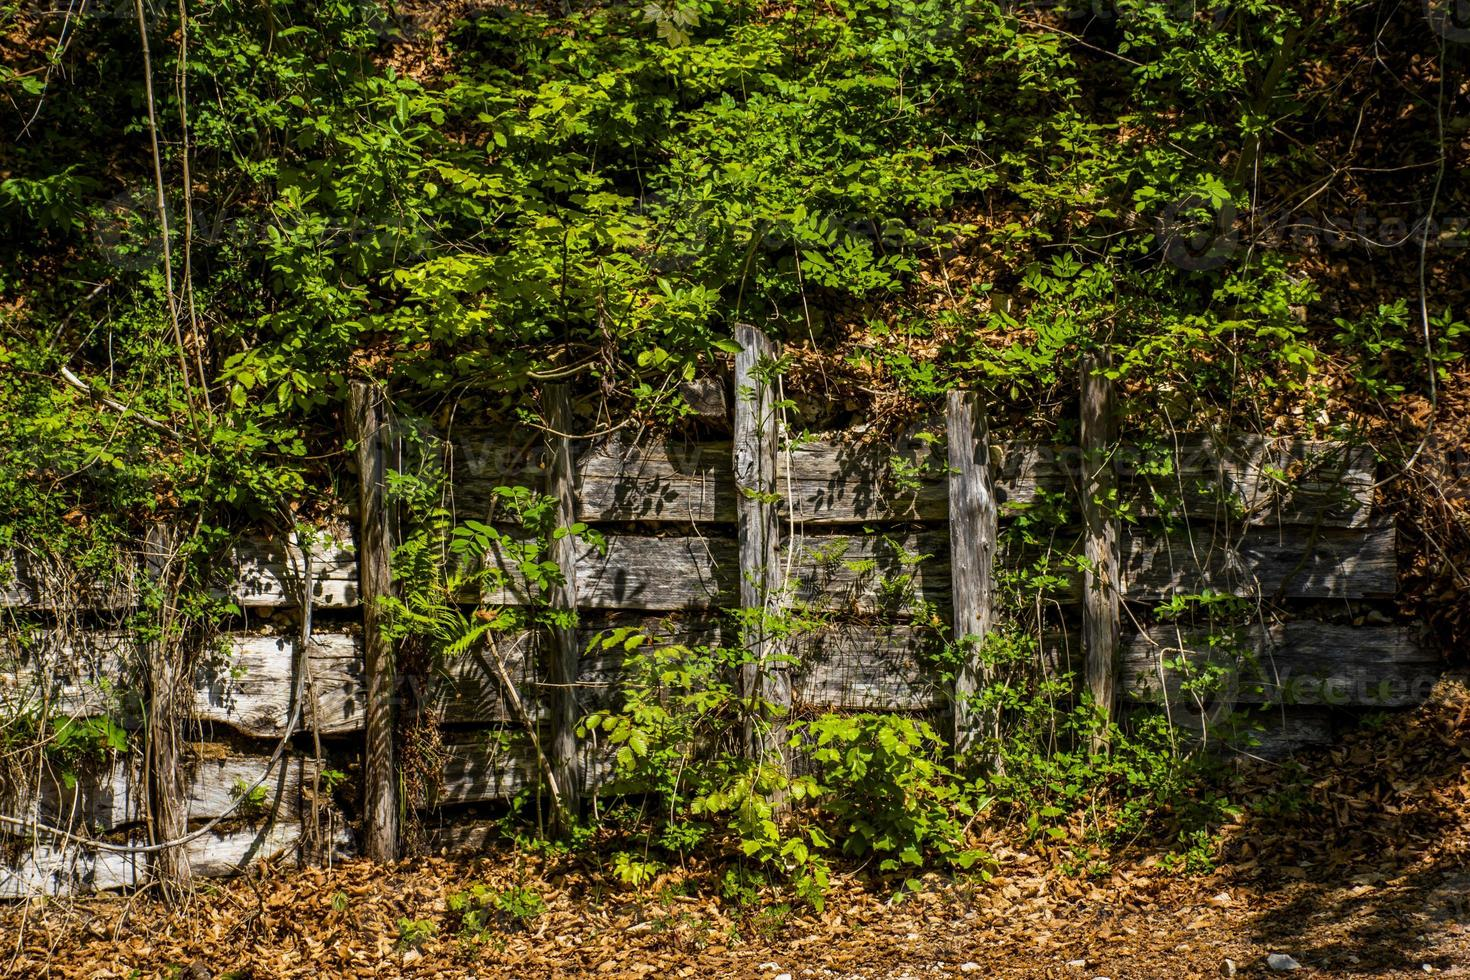 Wooden fence covered in greenery photo